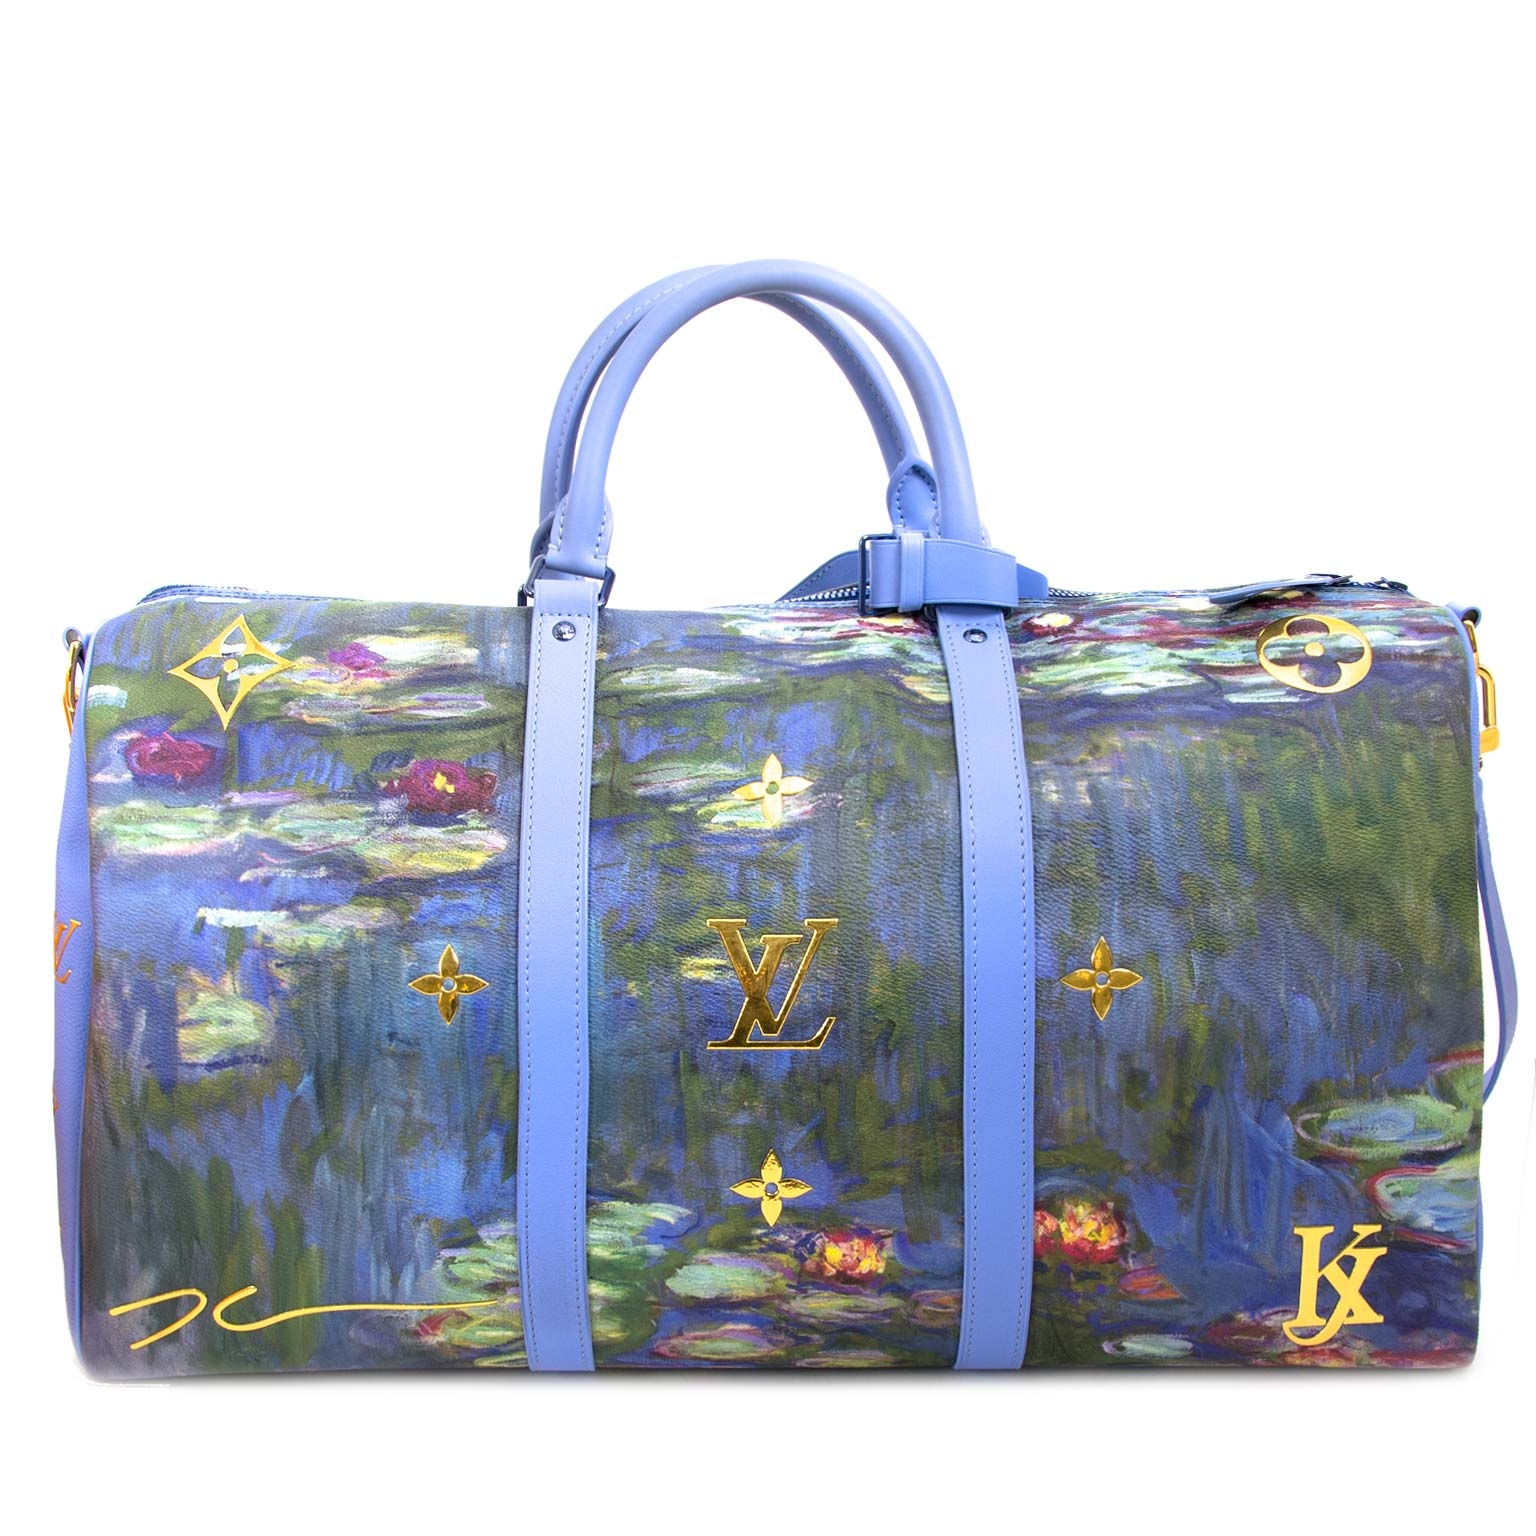 louis vuitton monet keepall 50 now for sale at labellov vintage fashion webshop belgium